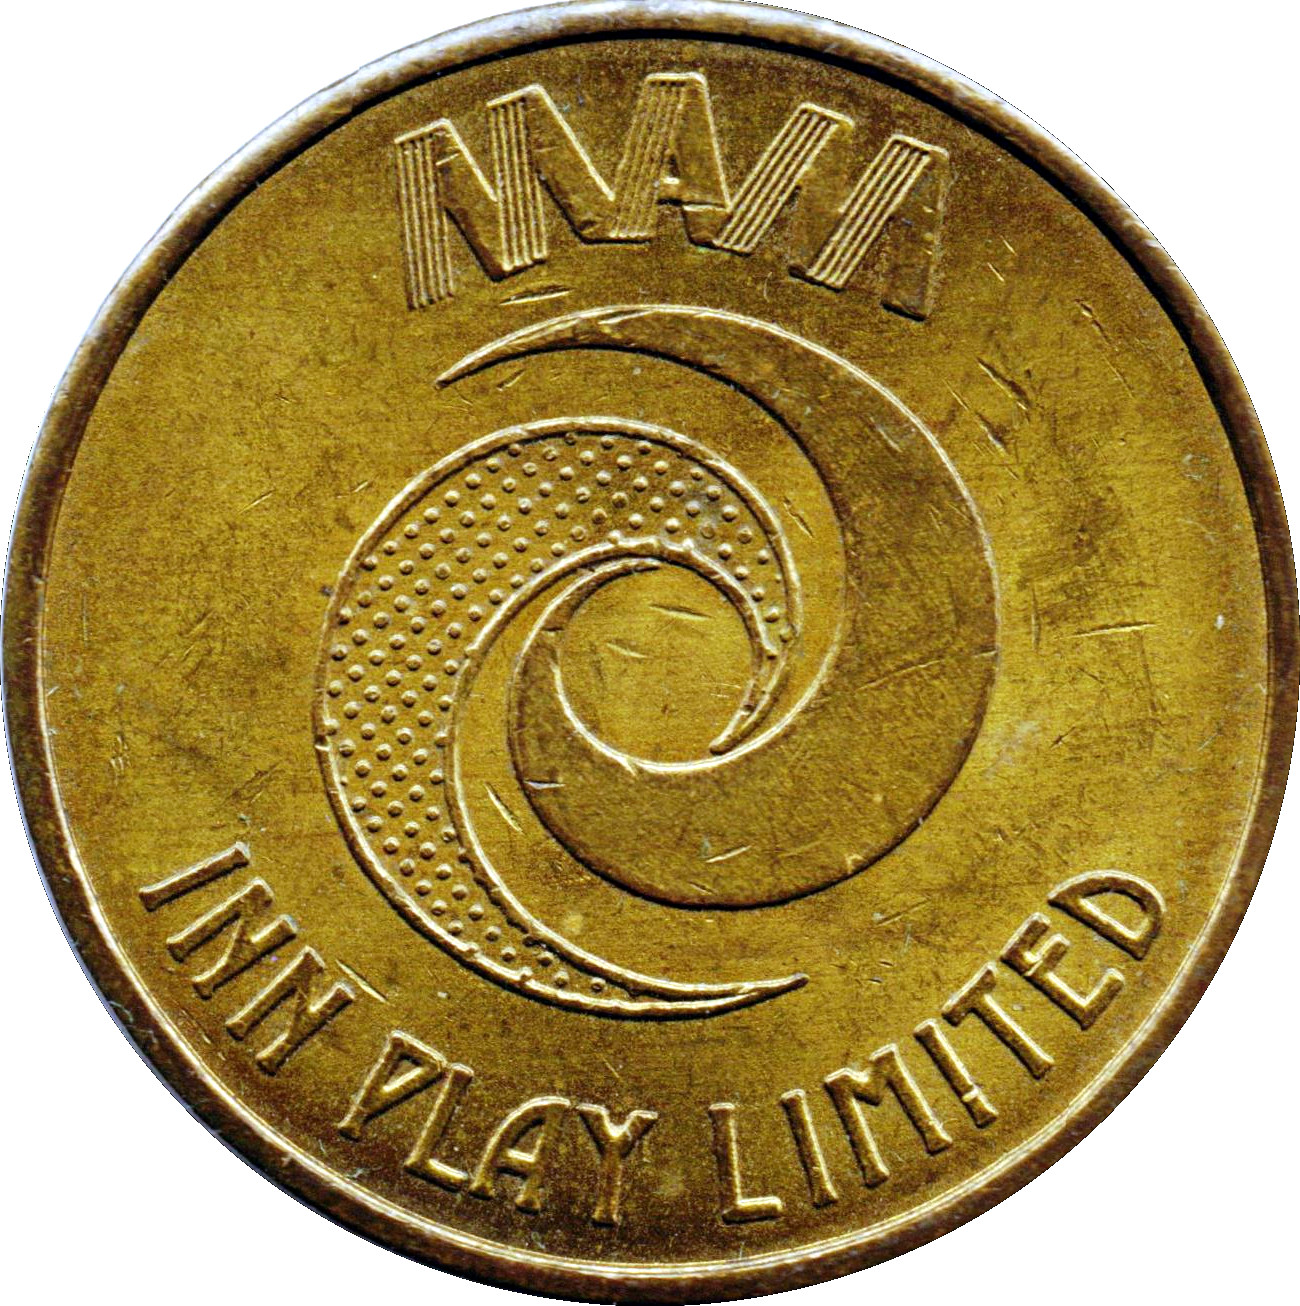 10p mam inn play limited tokens numista for Mam limited